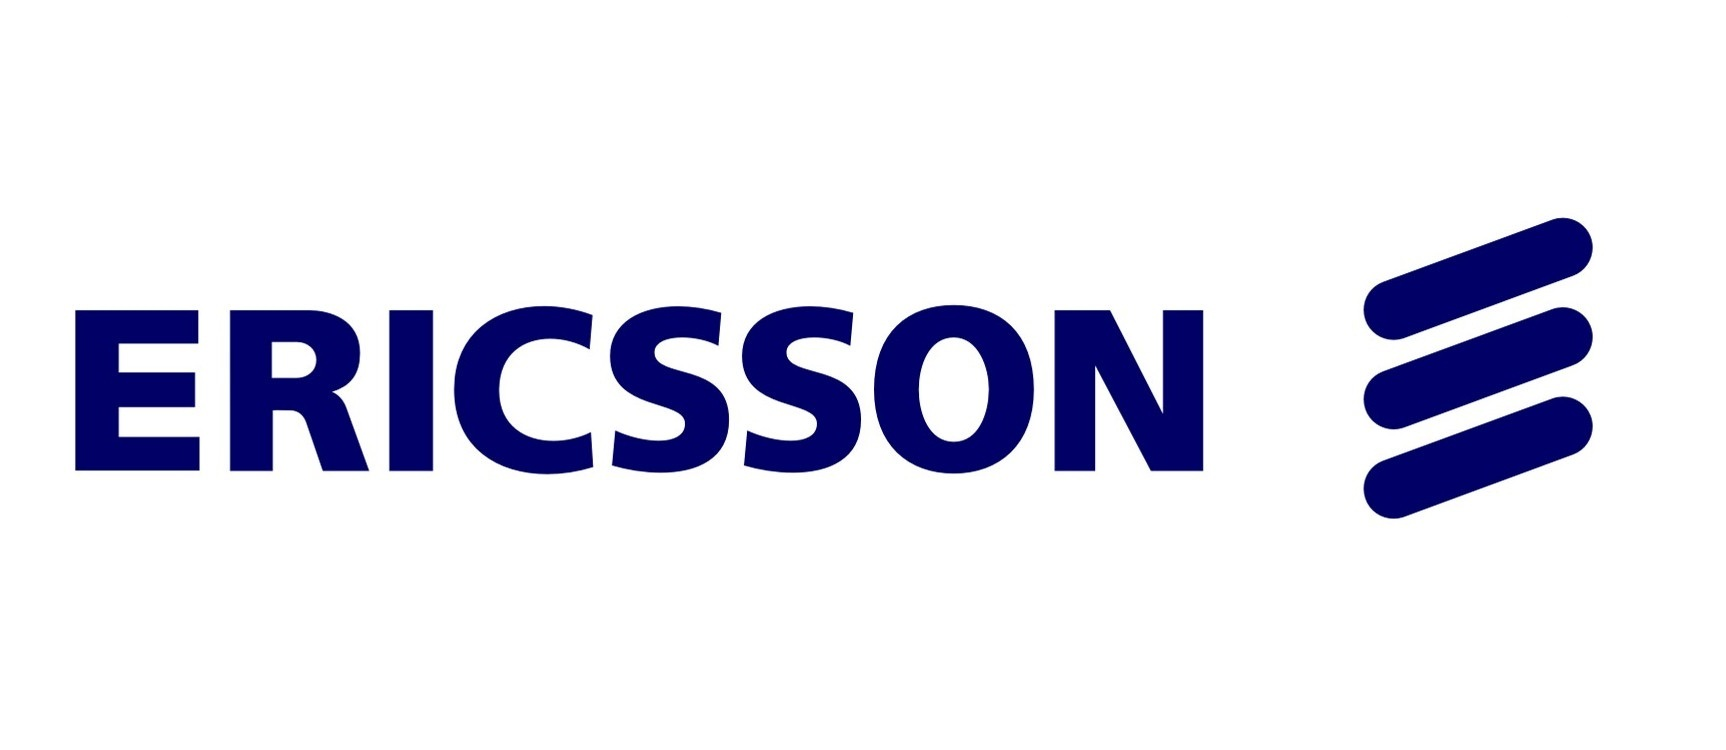 Product Management From HBO to Ericsson